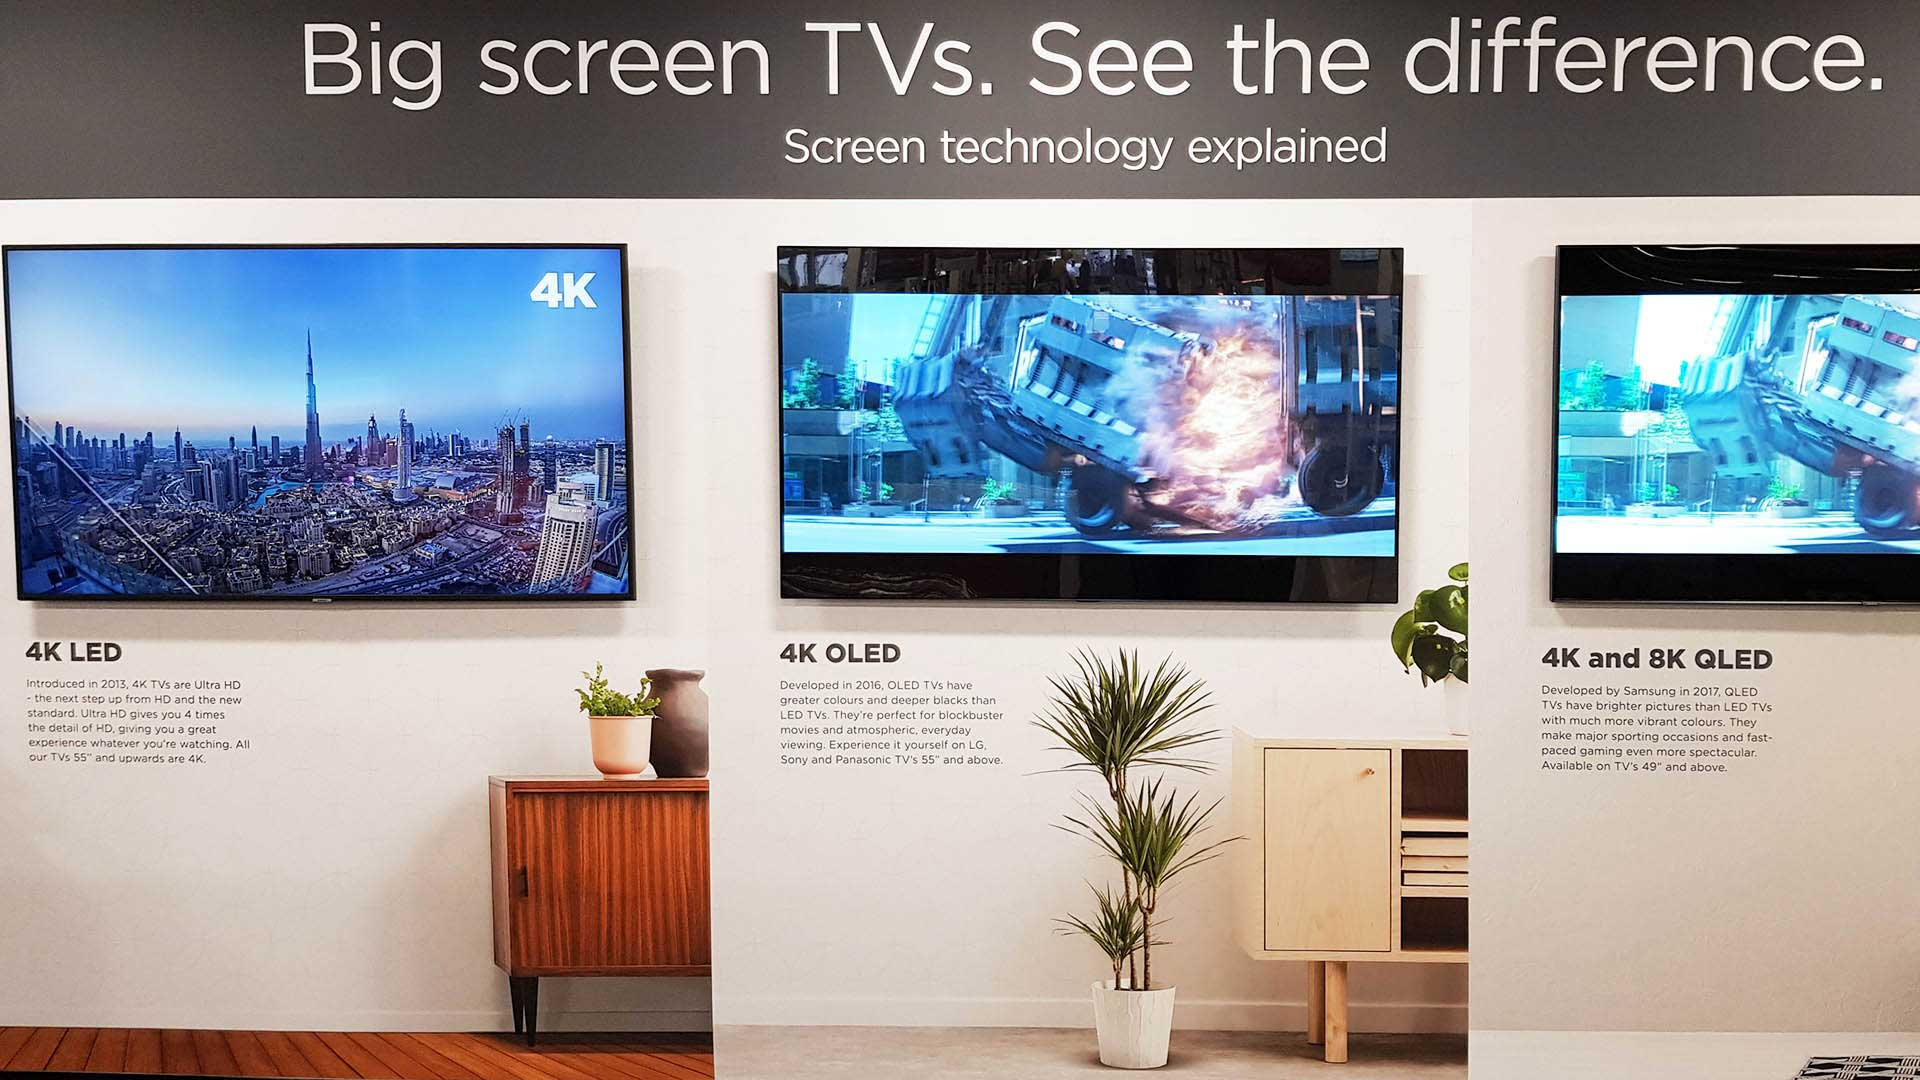 Which 4k TV? Samsung QLED or LG OLED, or Sony HDR